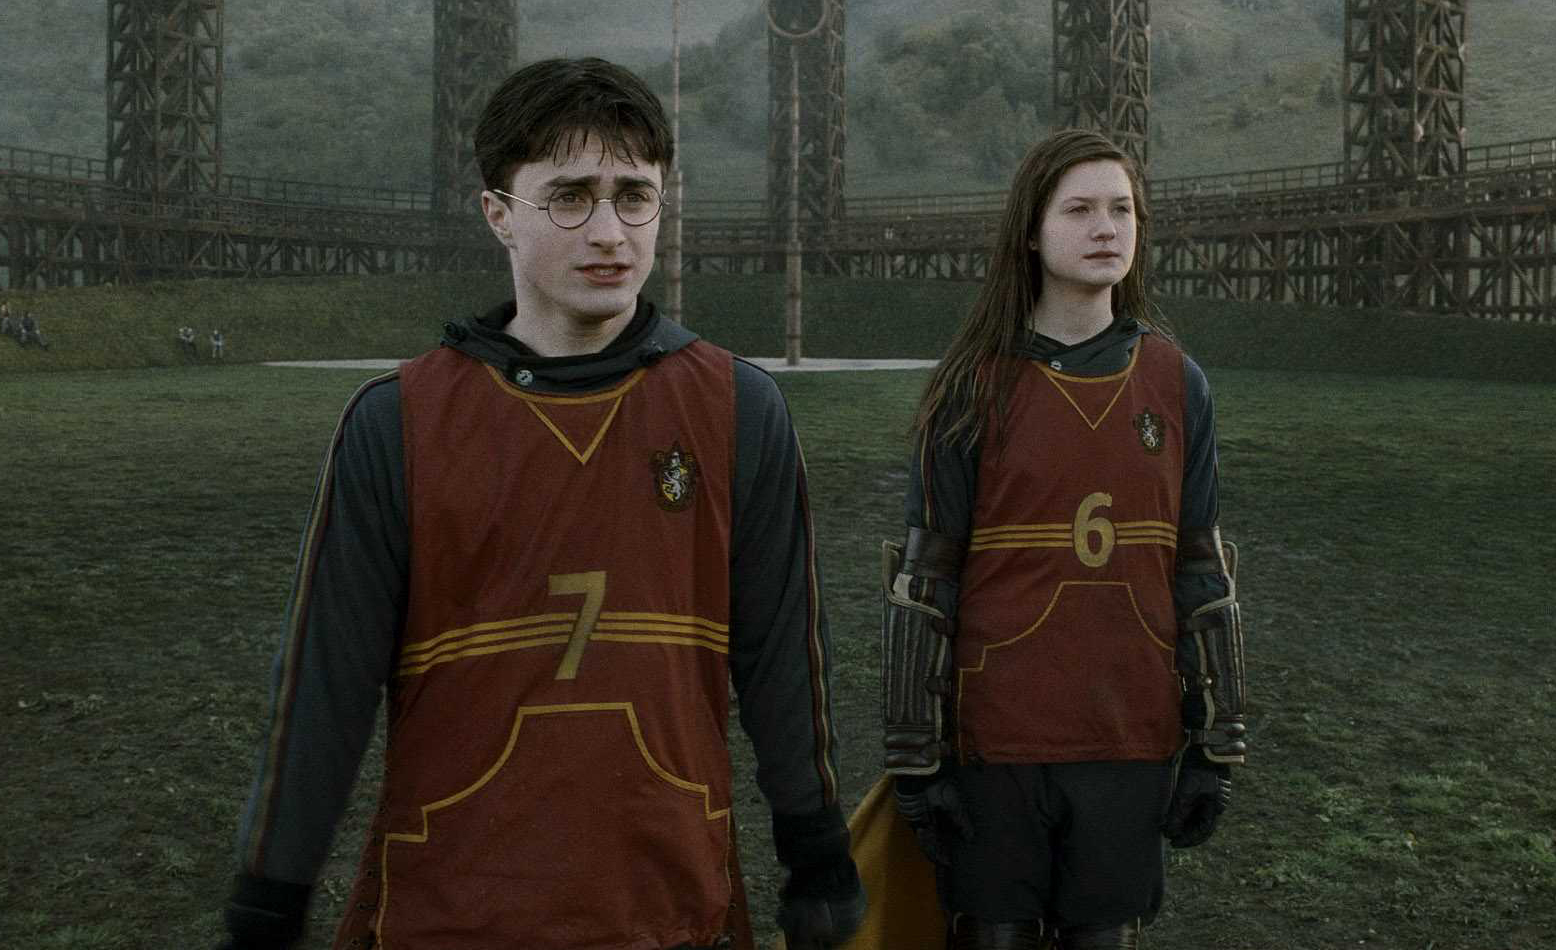 Daniel Radcliffe and Bonnie Wright in Harry Potter.